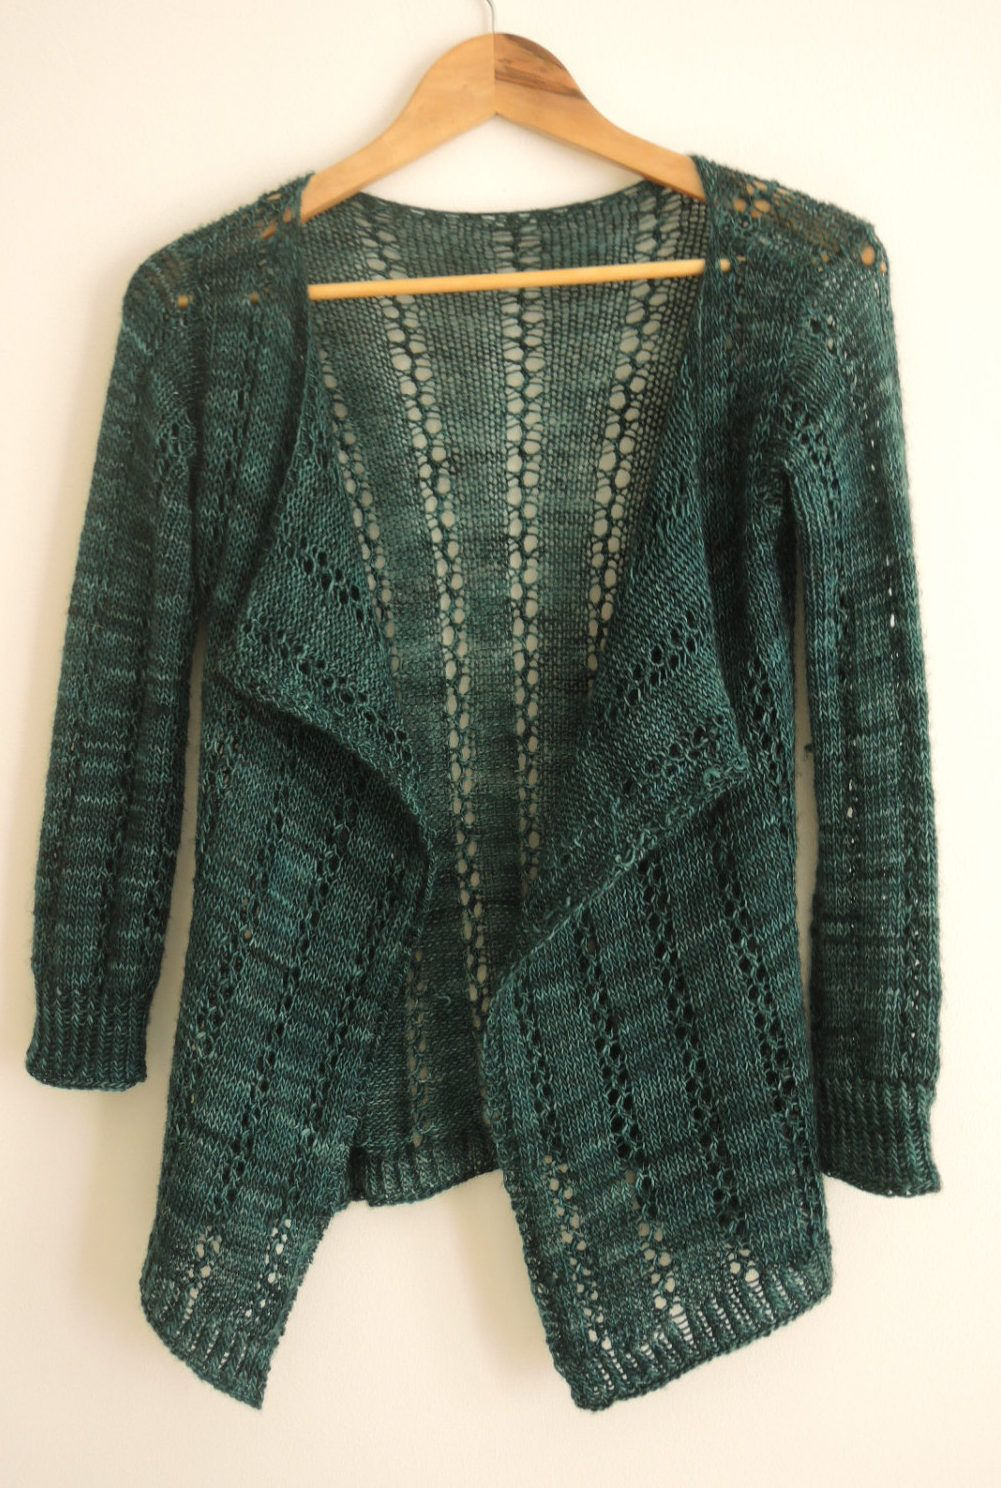 Knitting pattern for 4 row repeat lace cardigan queens park knitting pattern for 4 row repeat lace cardigan queens park cardigan this draped front cardigan bankloansurffo Image collections